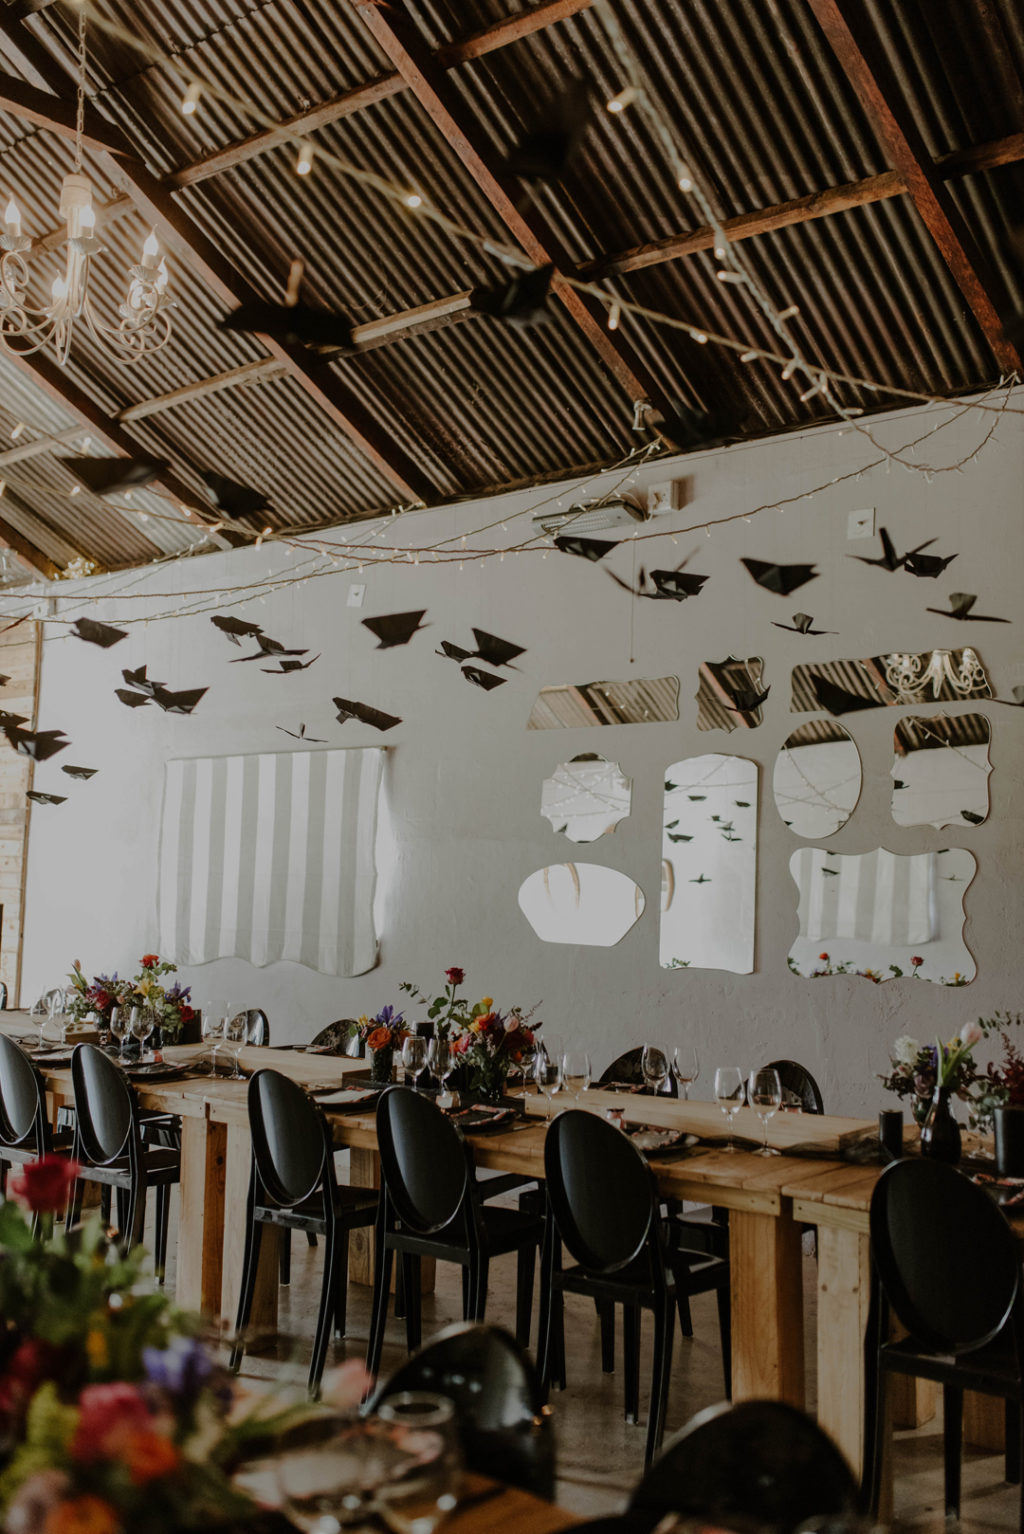 The wedding reception was done with uncovered tables and black chairs, with lush and bright florals